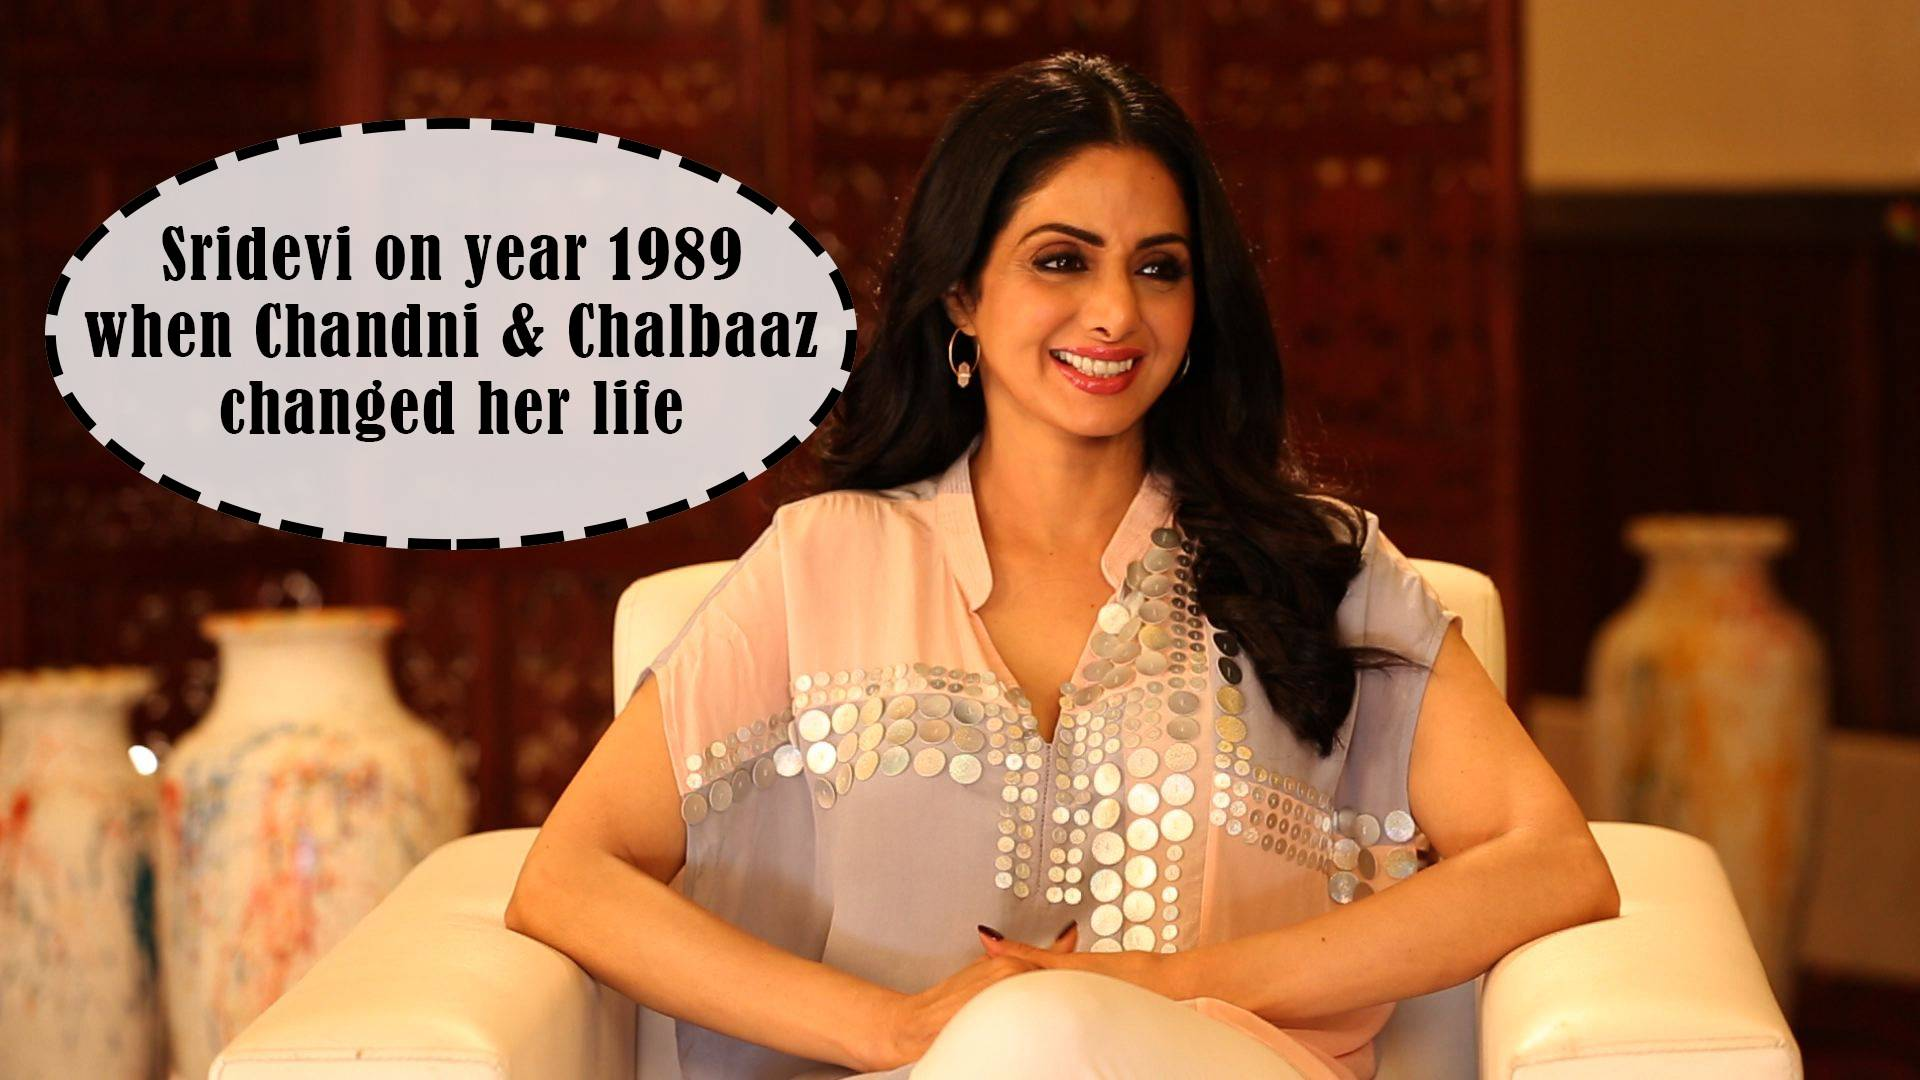 Sridevi on year 1989 when Chandni & Chalbaaz changed her life.